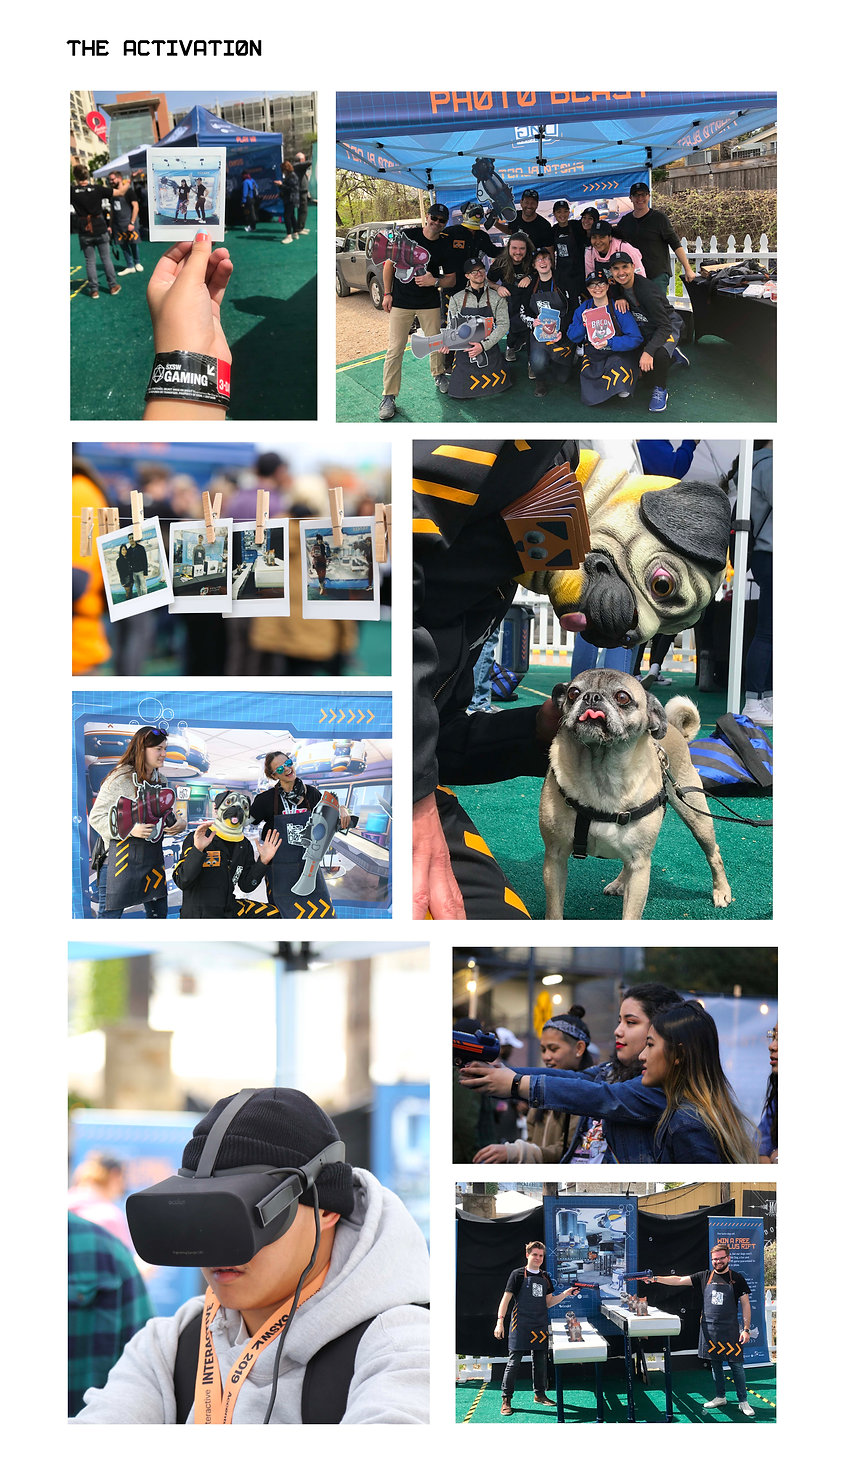 Wet Dog Corp Activation at SXSW Photos